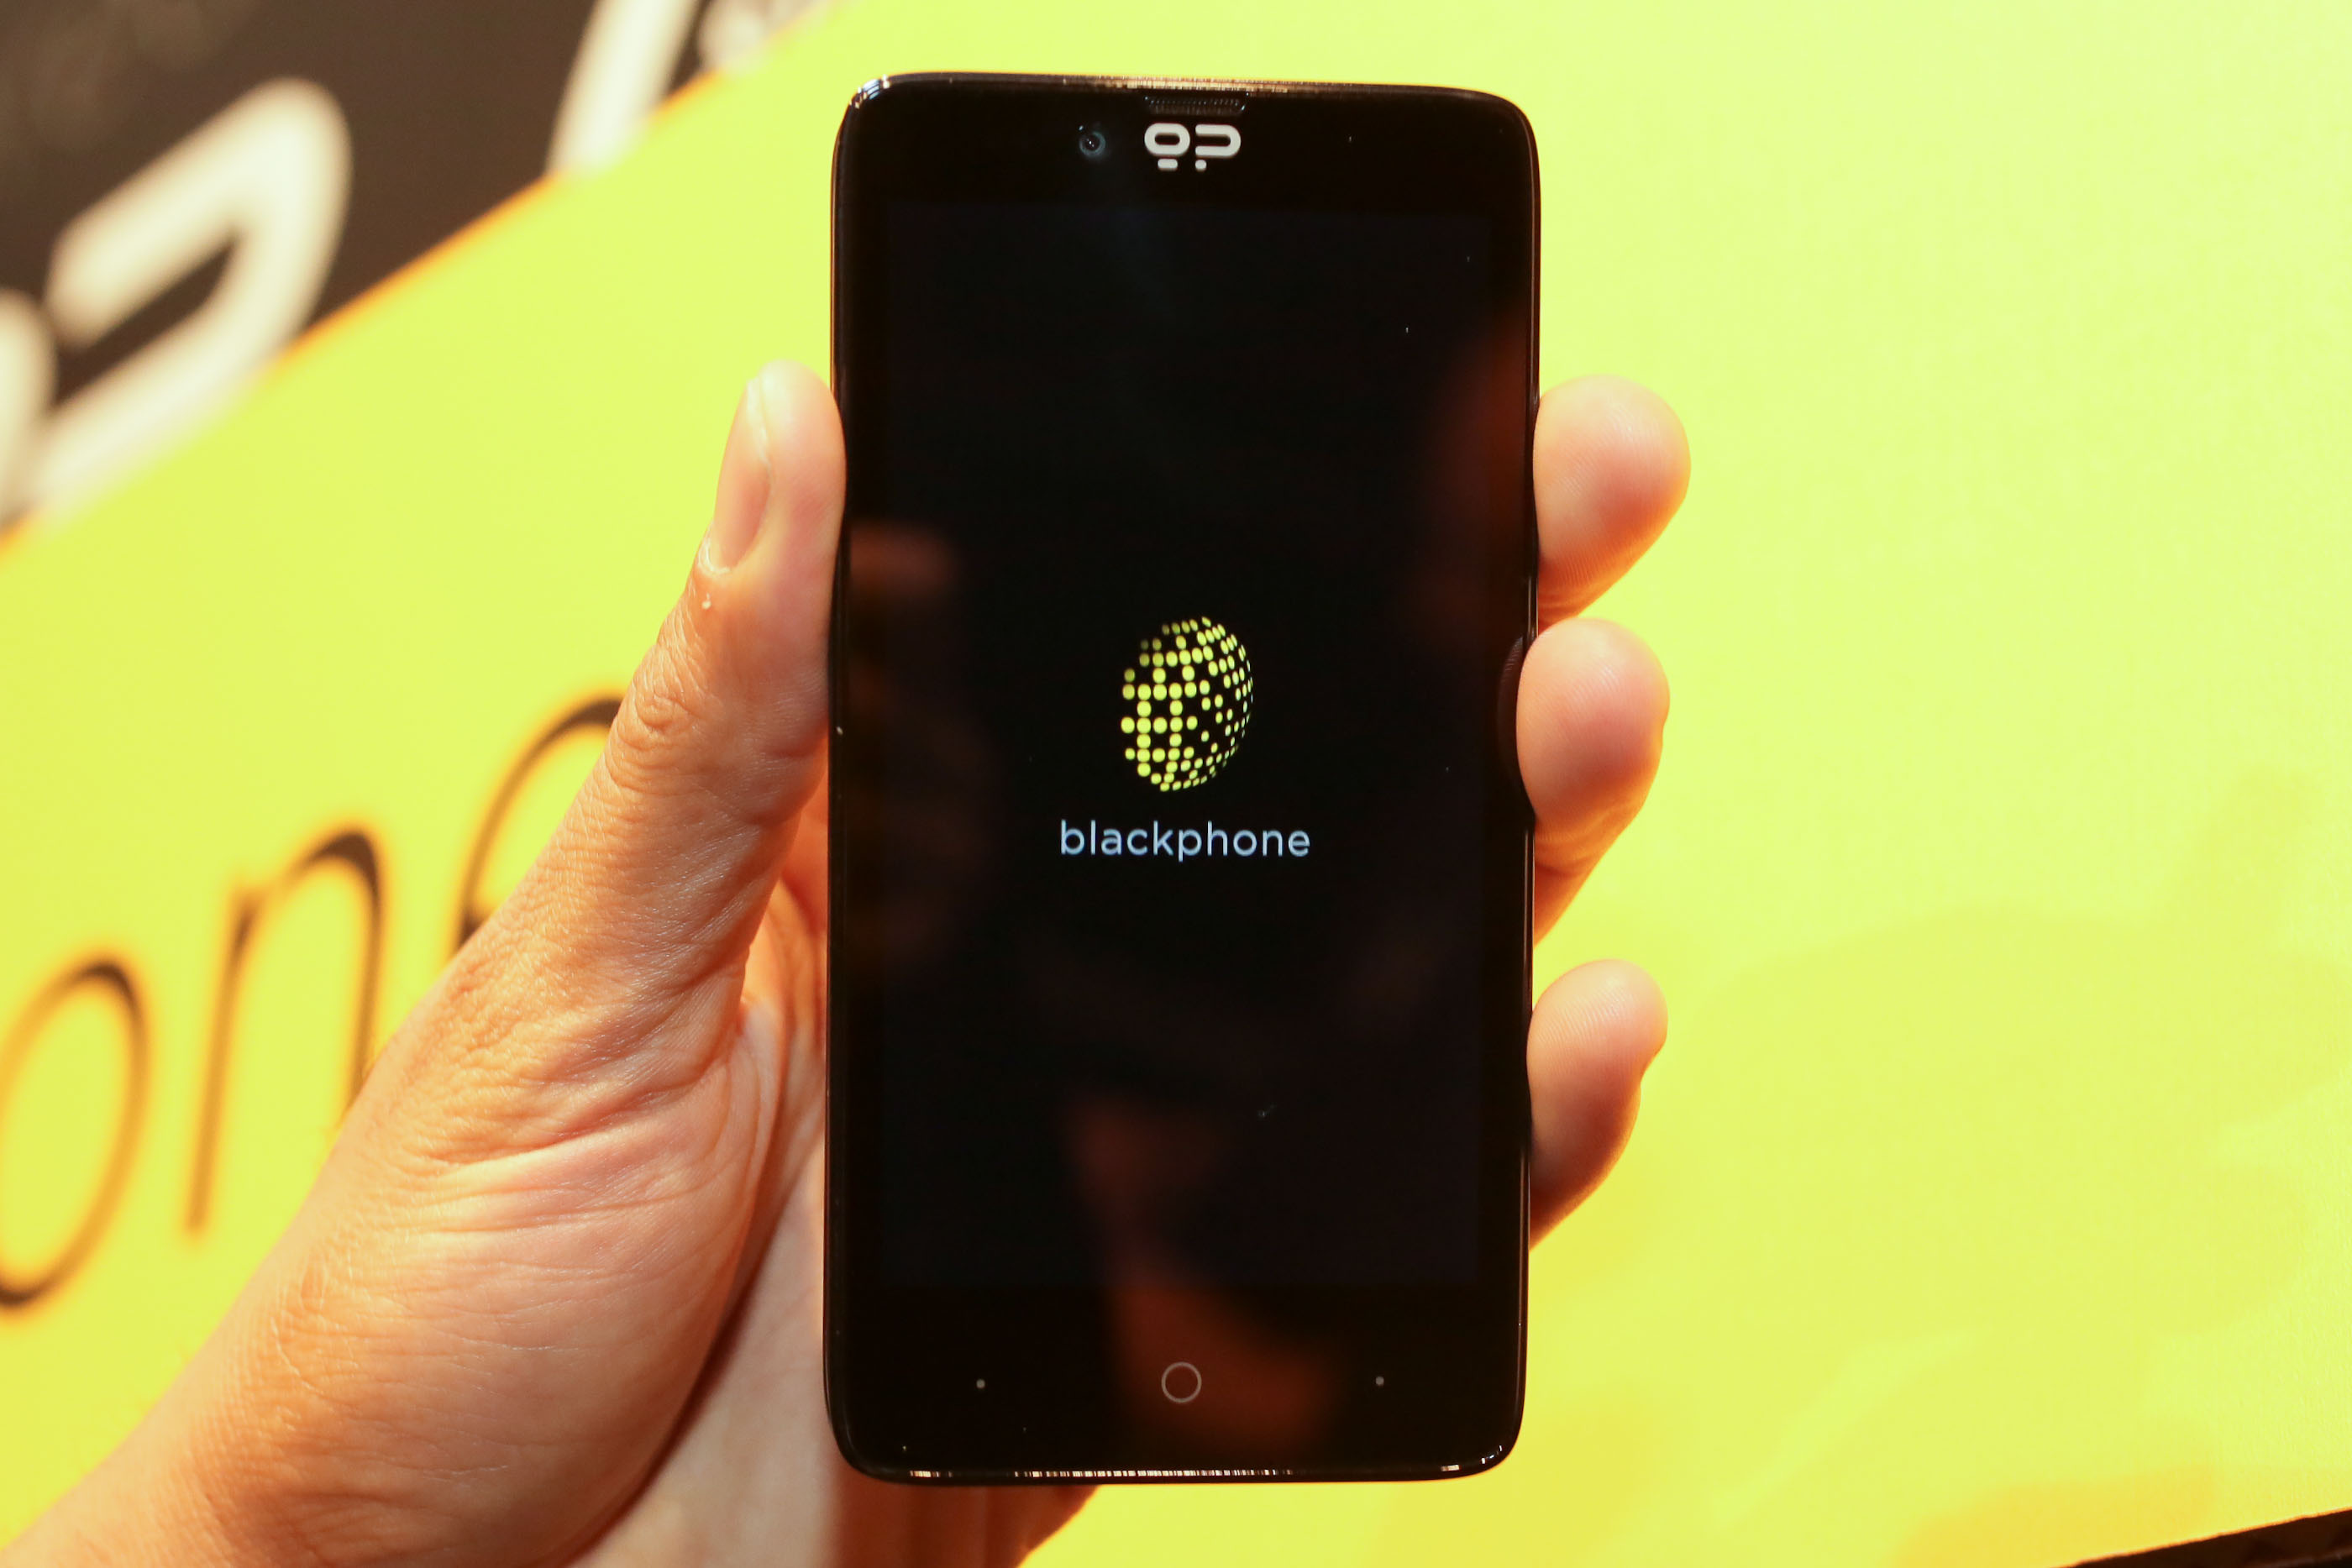 002Geekphone_Blackphone_35835123_add.jpg